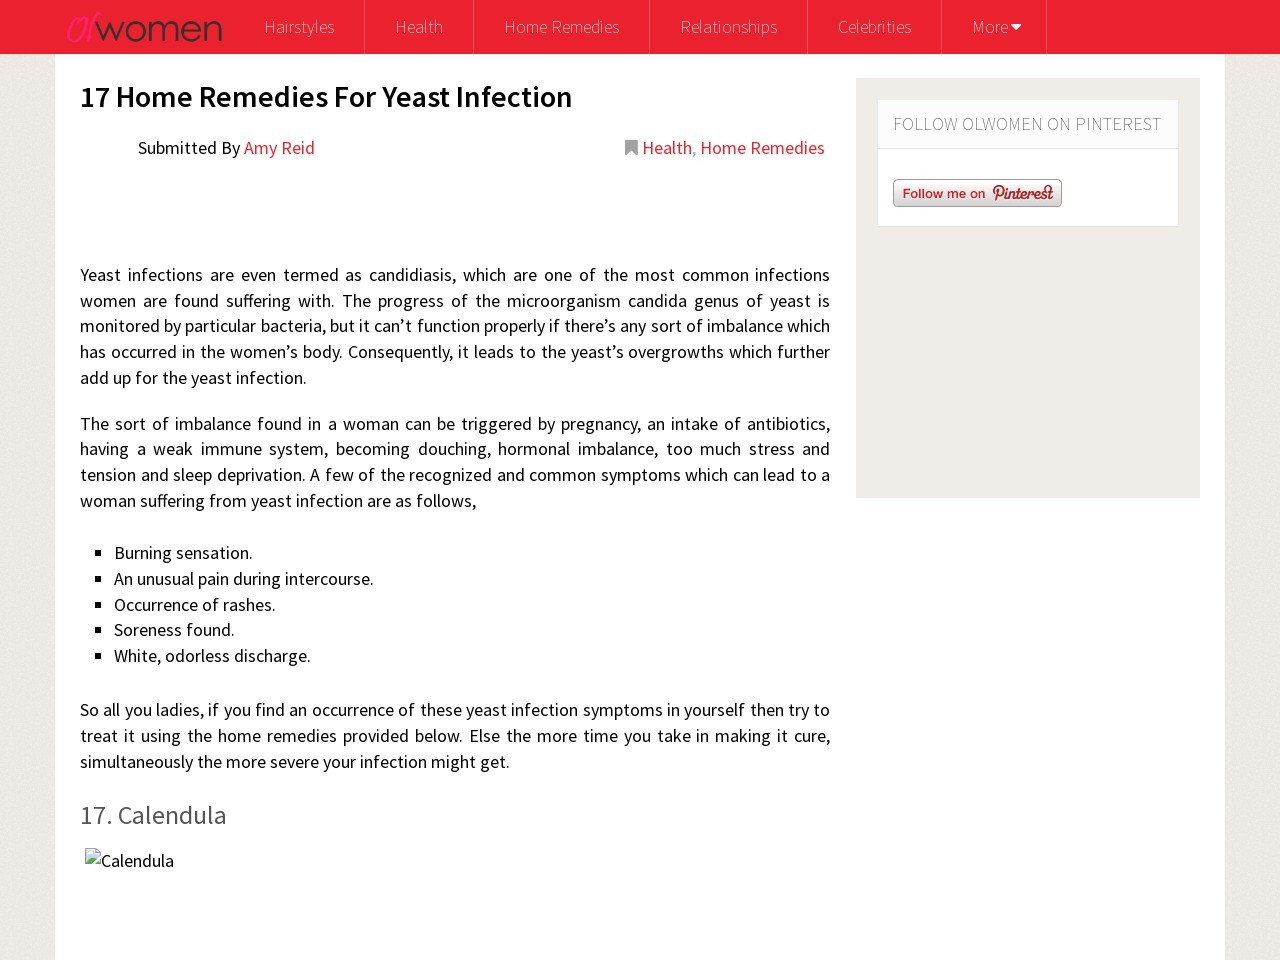 17 Home Remedies For Yeast Infection – OLWomen.com